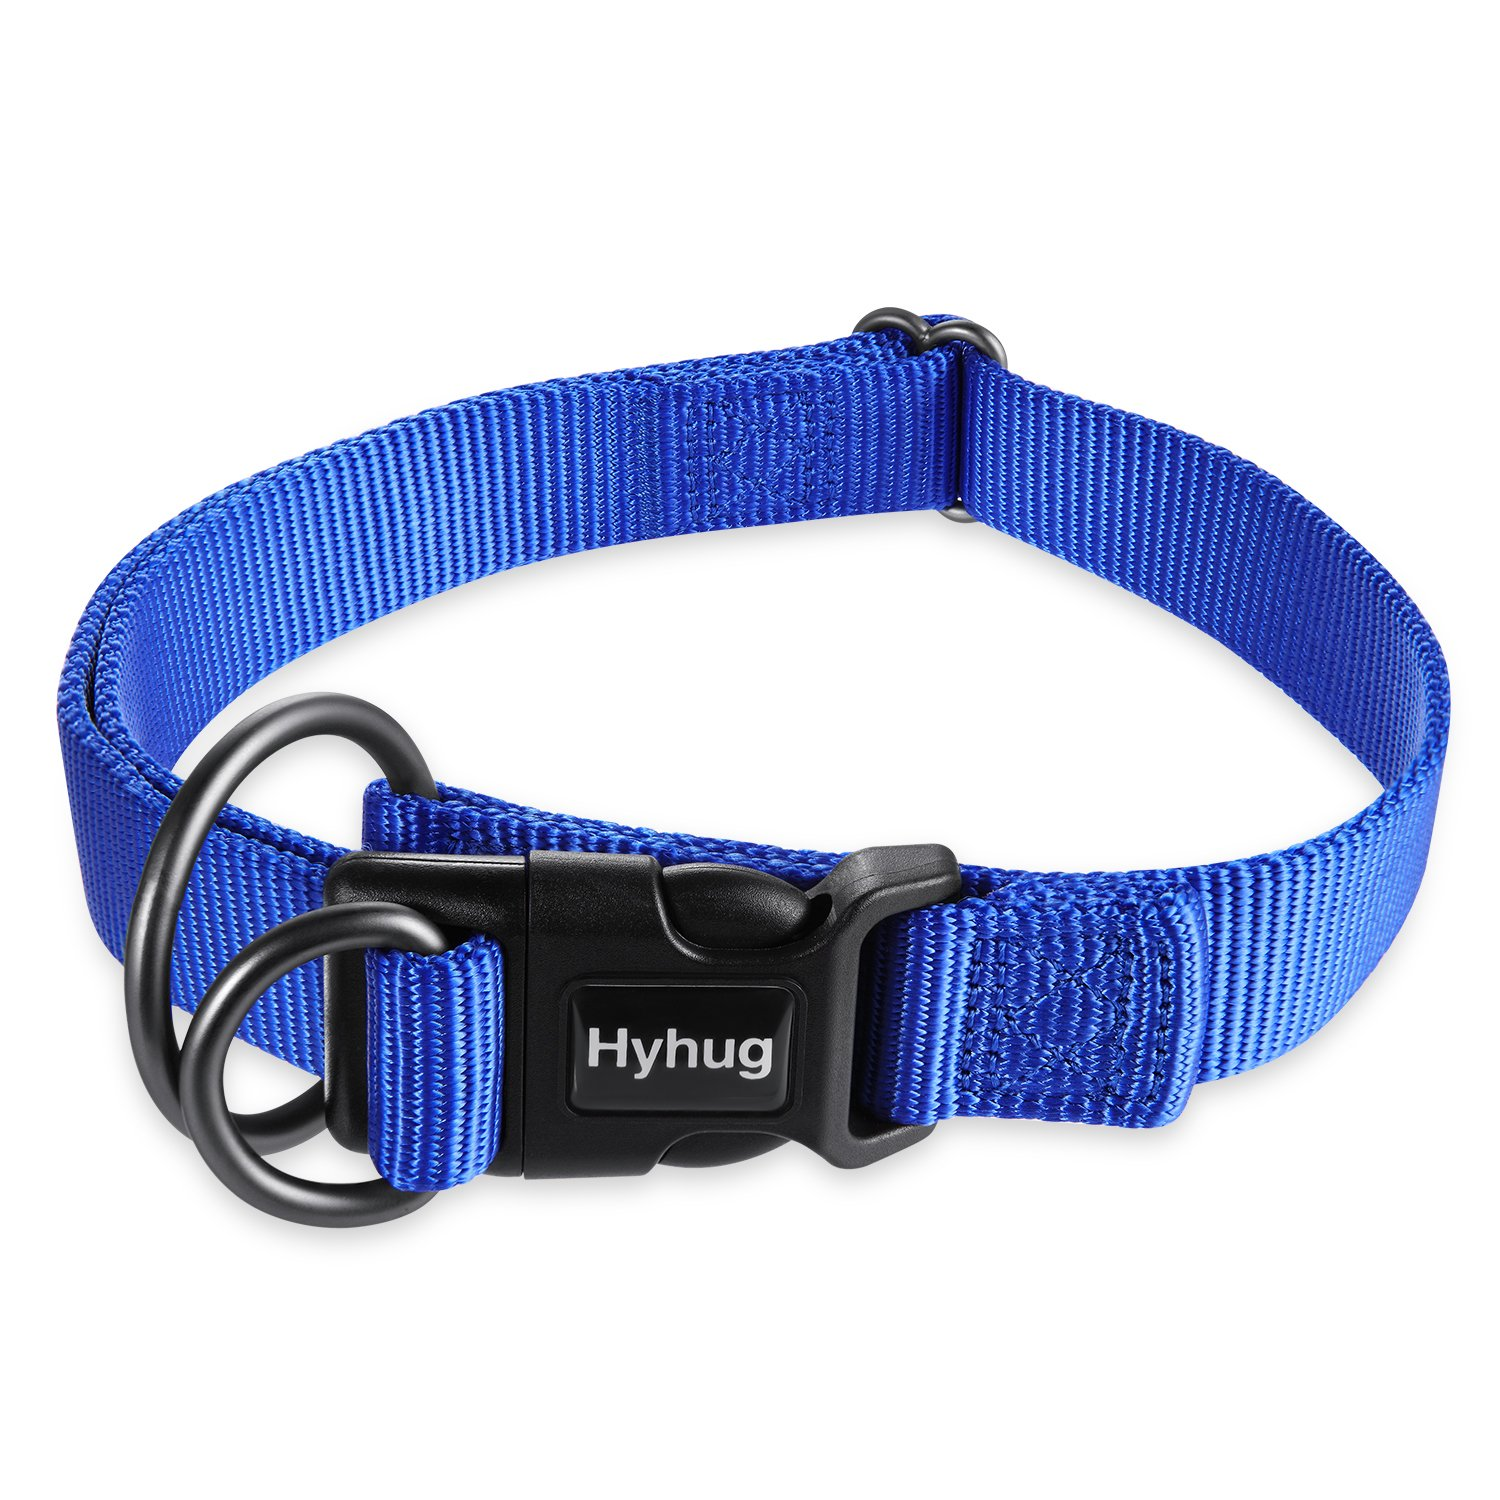 Bright bluee Medium Bright bluee Medium Hyhug Premium Comfy and Safety Classic Durable Nylon Solid color Dog Collar with Easy to Get On Off Deluxe Buckle for Medium Dogs Walking, Professional Training and Daily Use.(Medium Bright bluee)